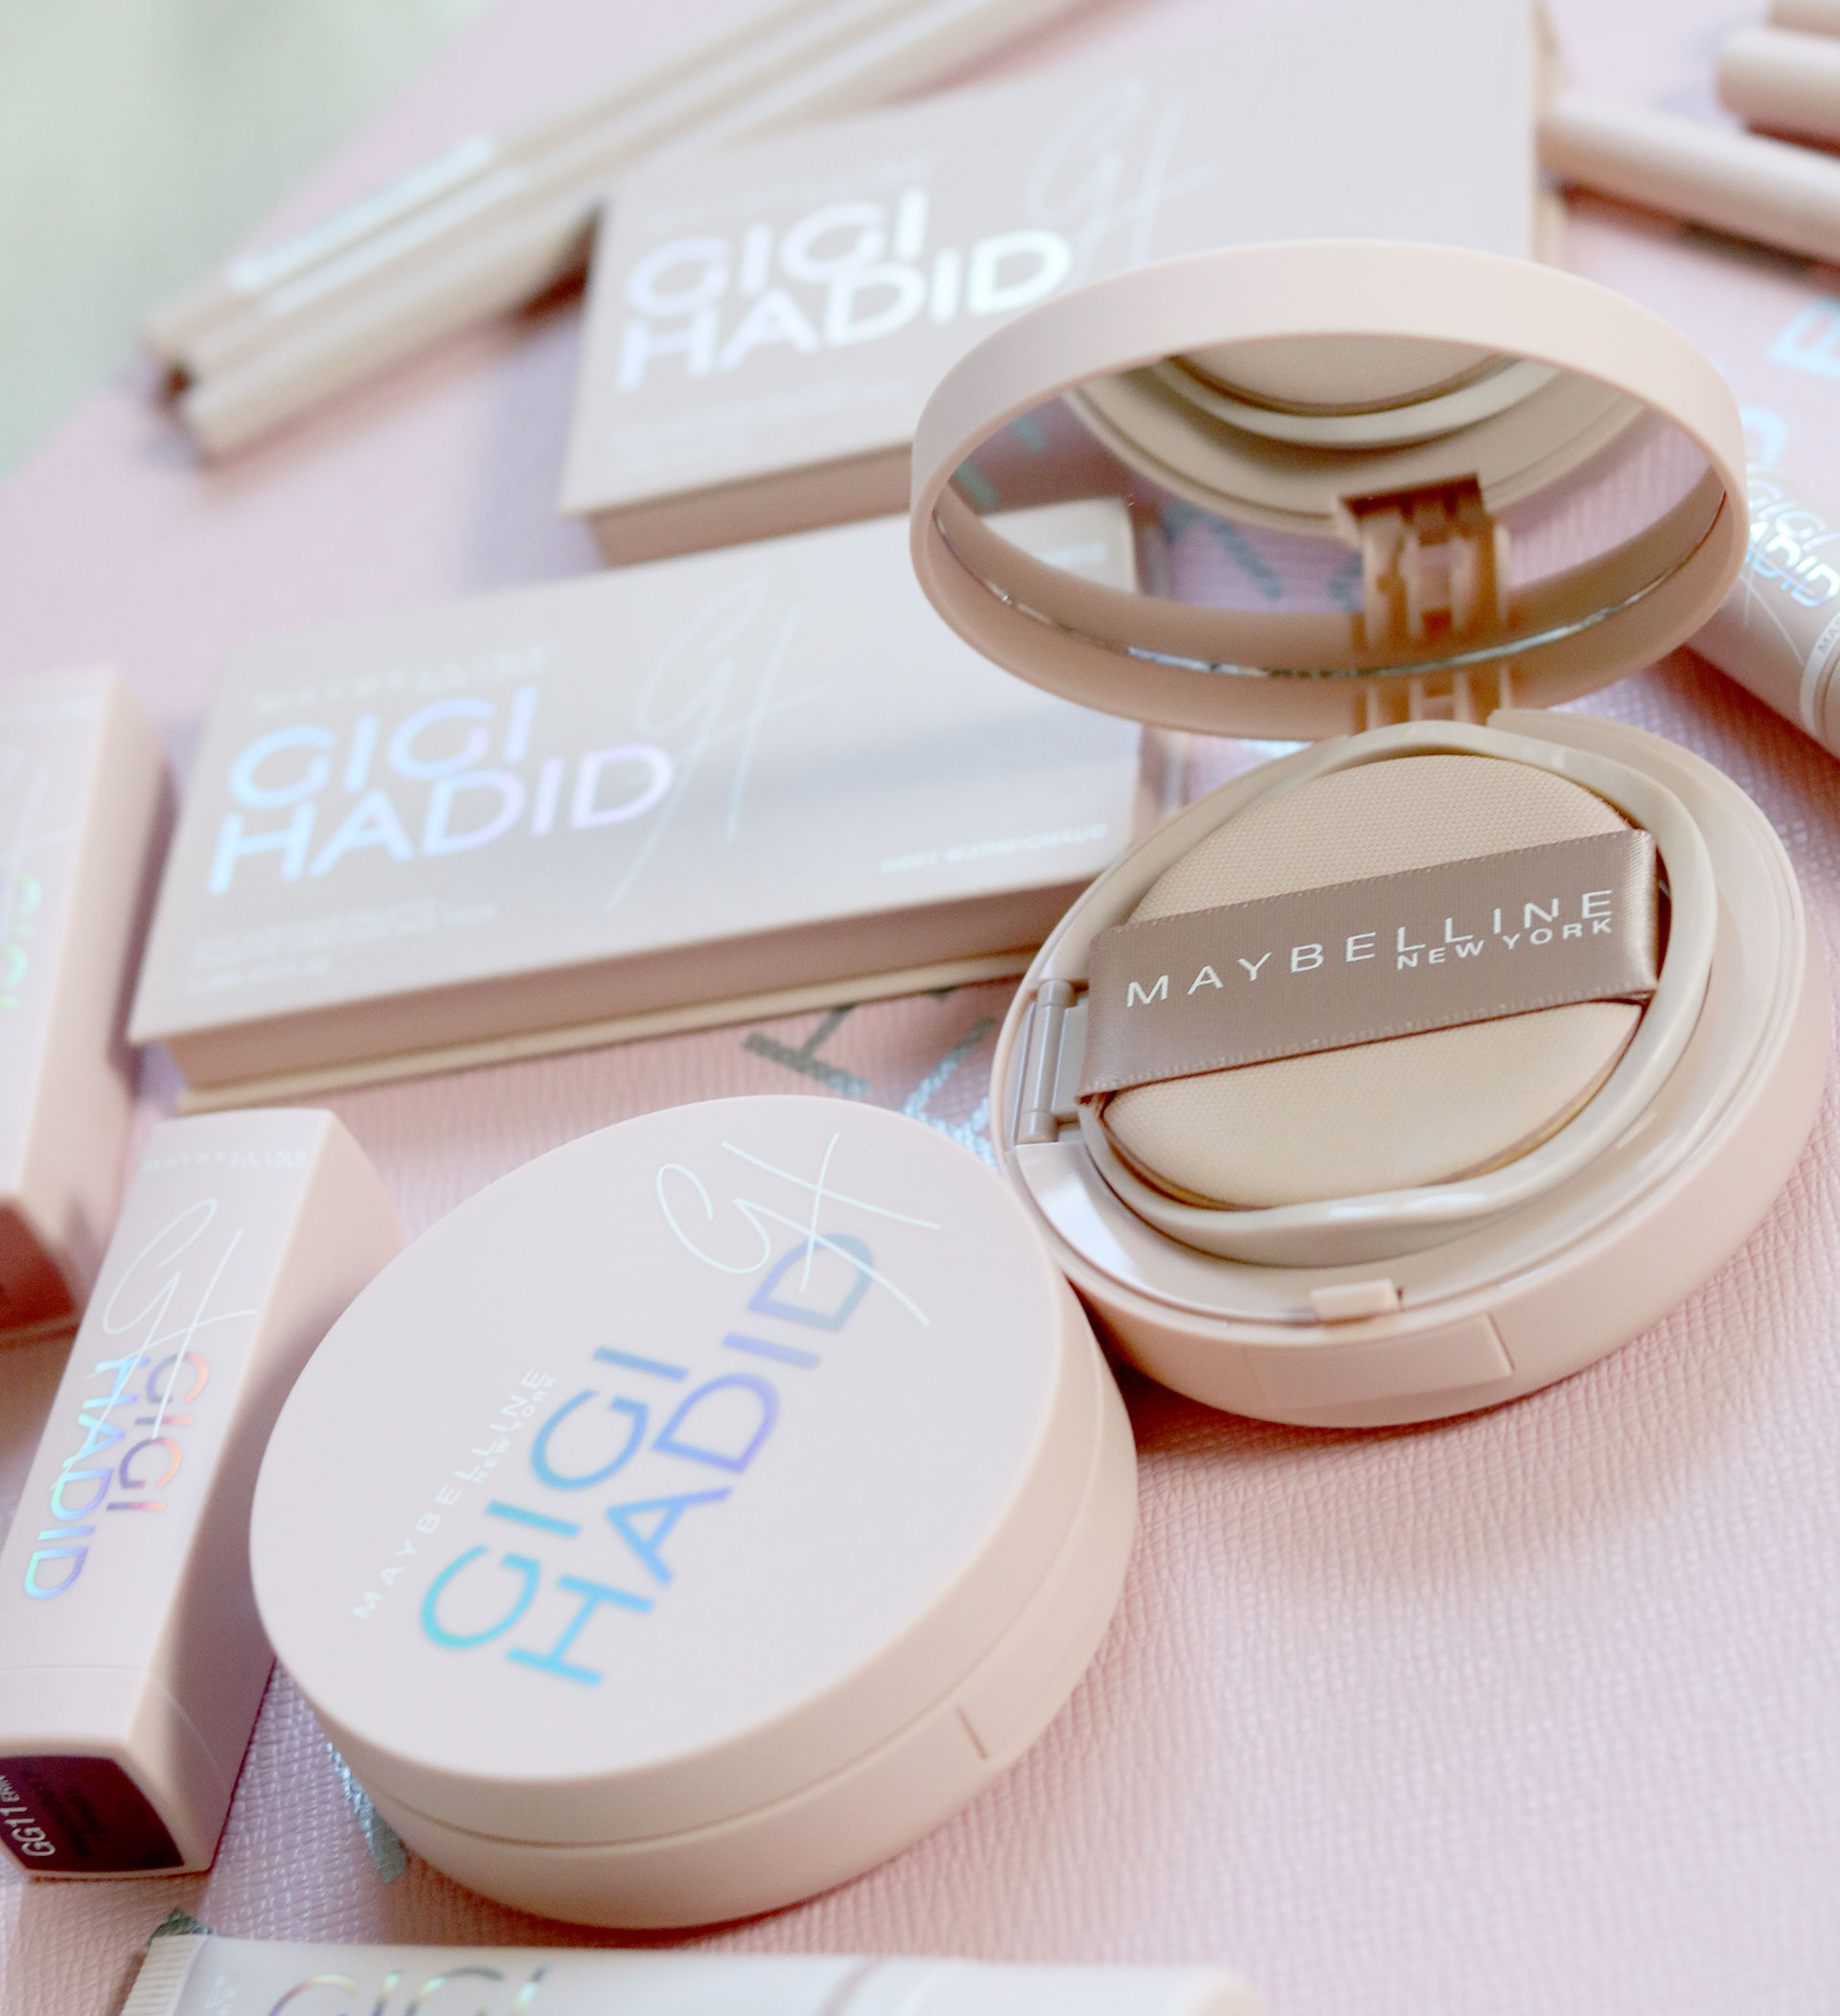 17 Gigi Hadid Maybelline Collection Review Swatches Photos - Gen-zel She Sings Beauty